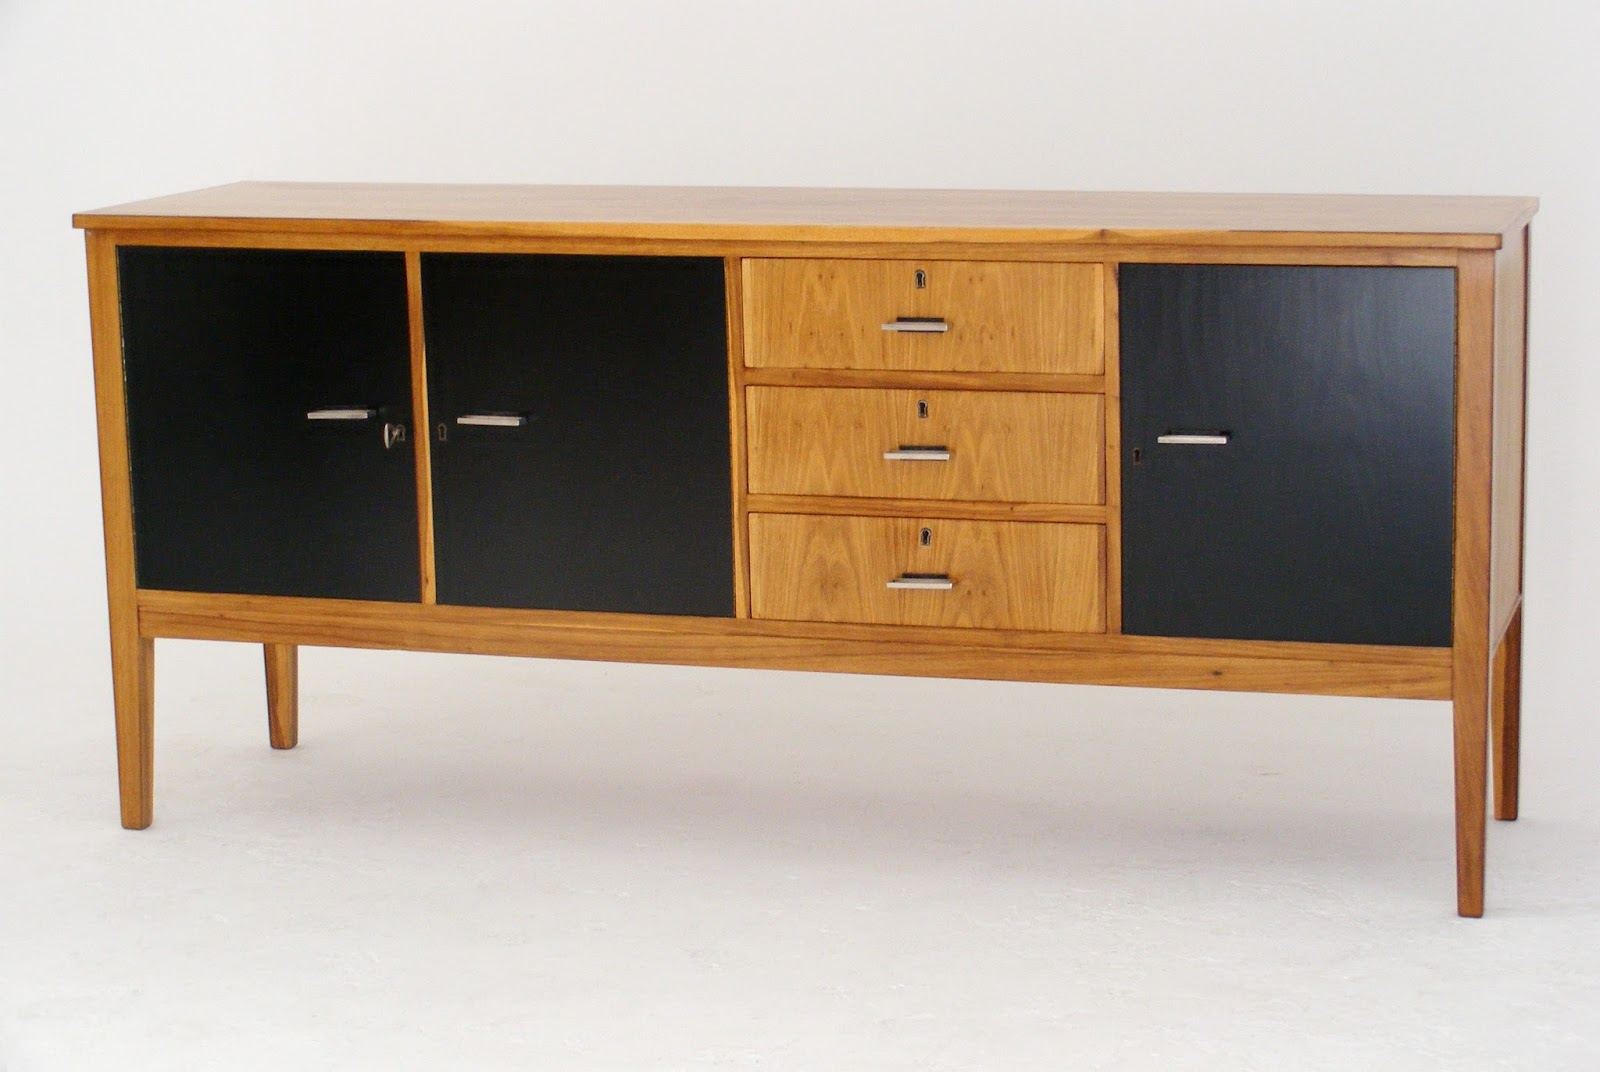 Vamp Furniture This Weeks New Vintage Furniture Stock At Vamp 04 September 2015